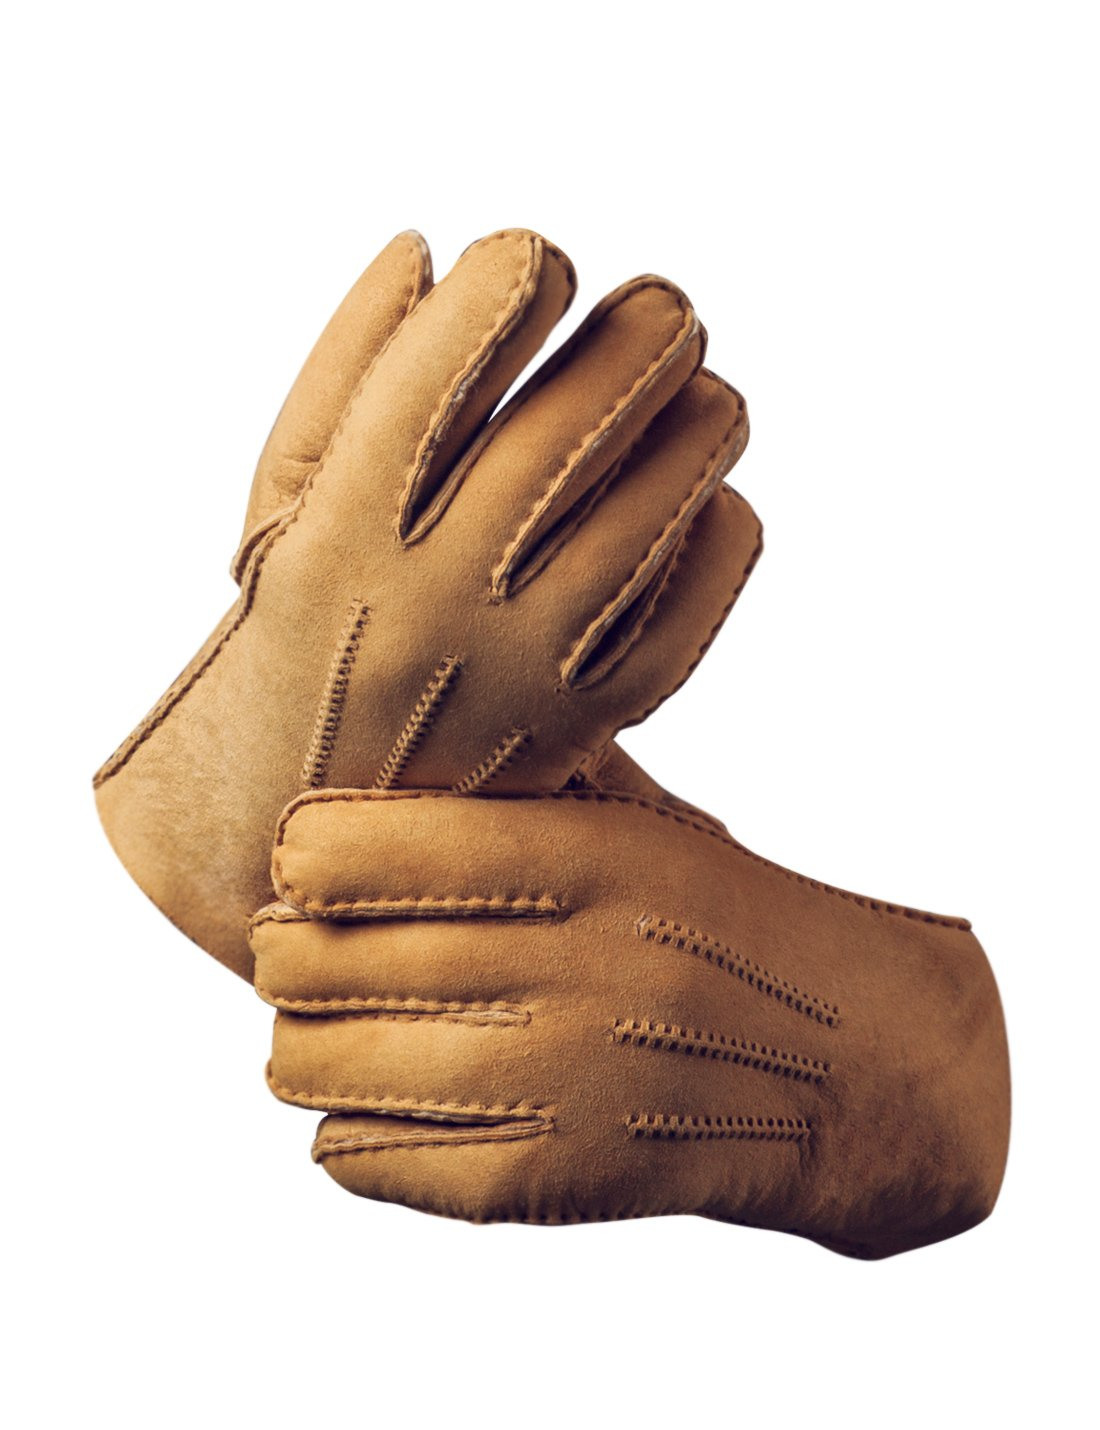 YISEVEN Men's Merino Rugged Sheepskin Shearling Leather Gloves Three Points Long Cuffs Thick Furry Fur Lined Warm Heated Lining Cuffs Winter Dress Driving Work Xmas Gifts, Camel Small